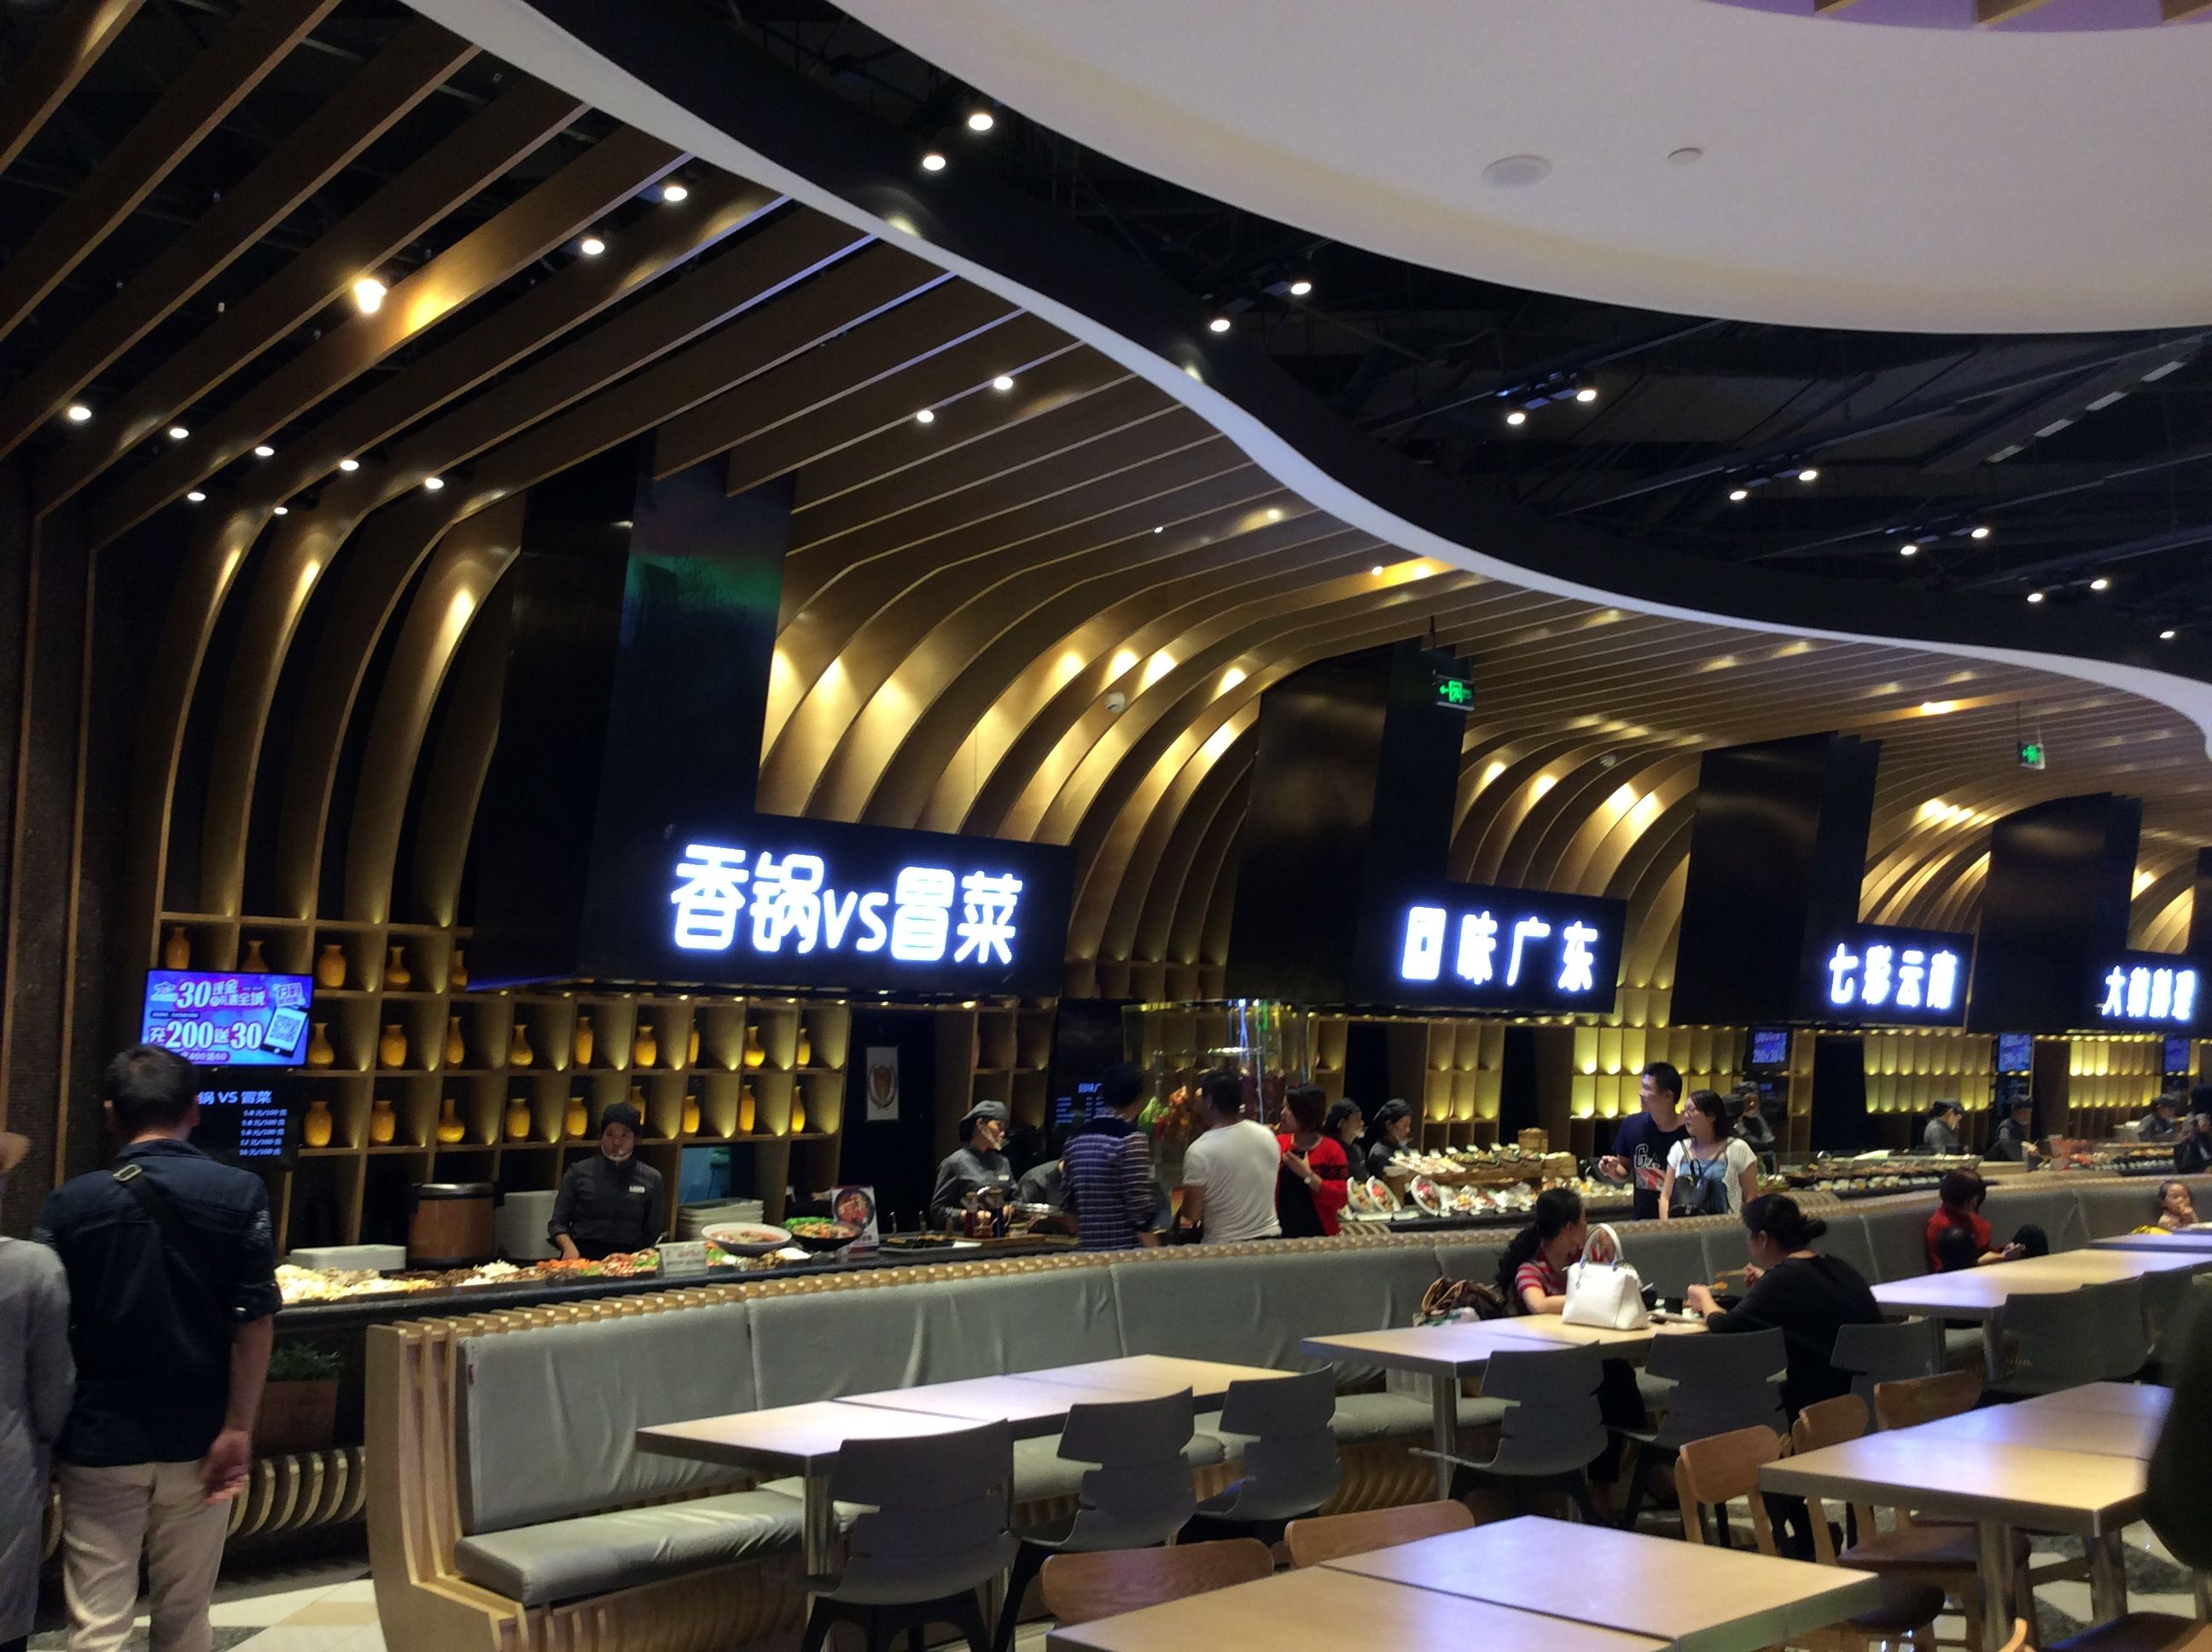 Pin by Fannie王 on 05_04-FoodCourt 美食广场 in 2019 | Food